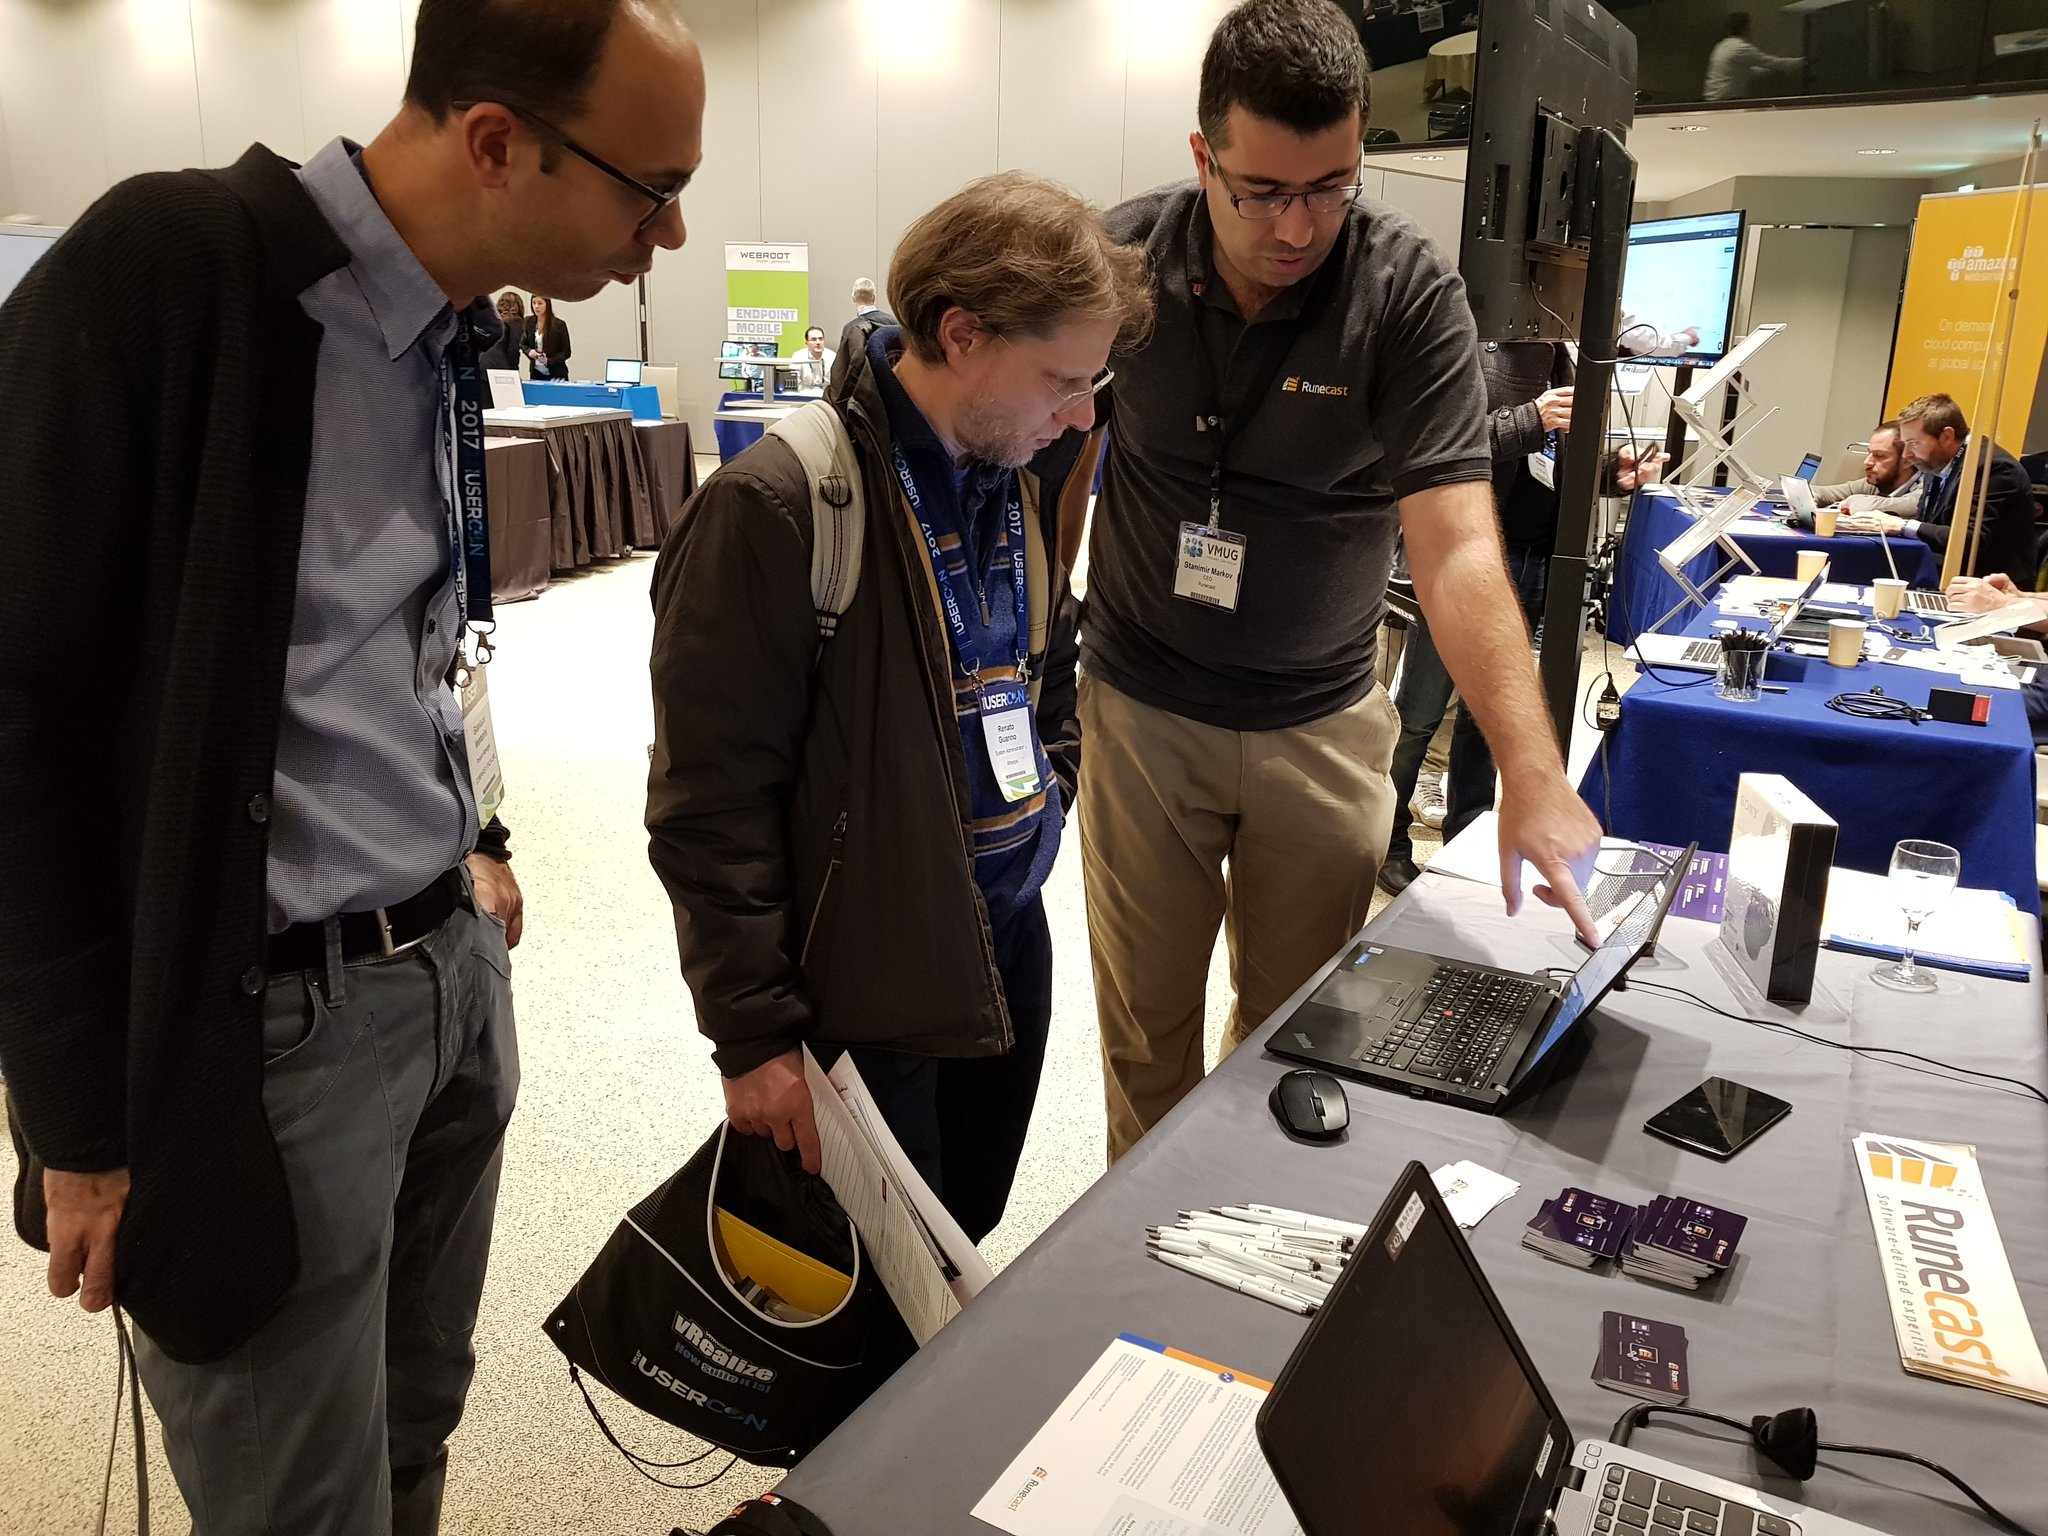 Stanimir giving a demo to one of the attendees.